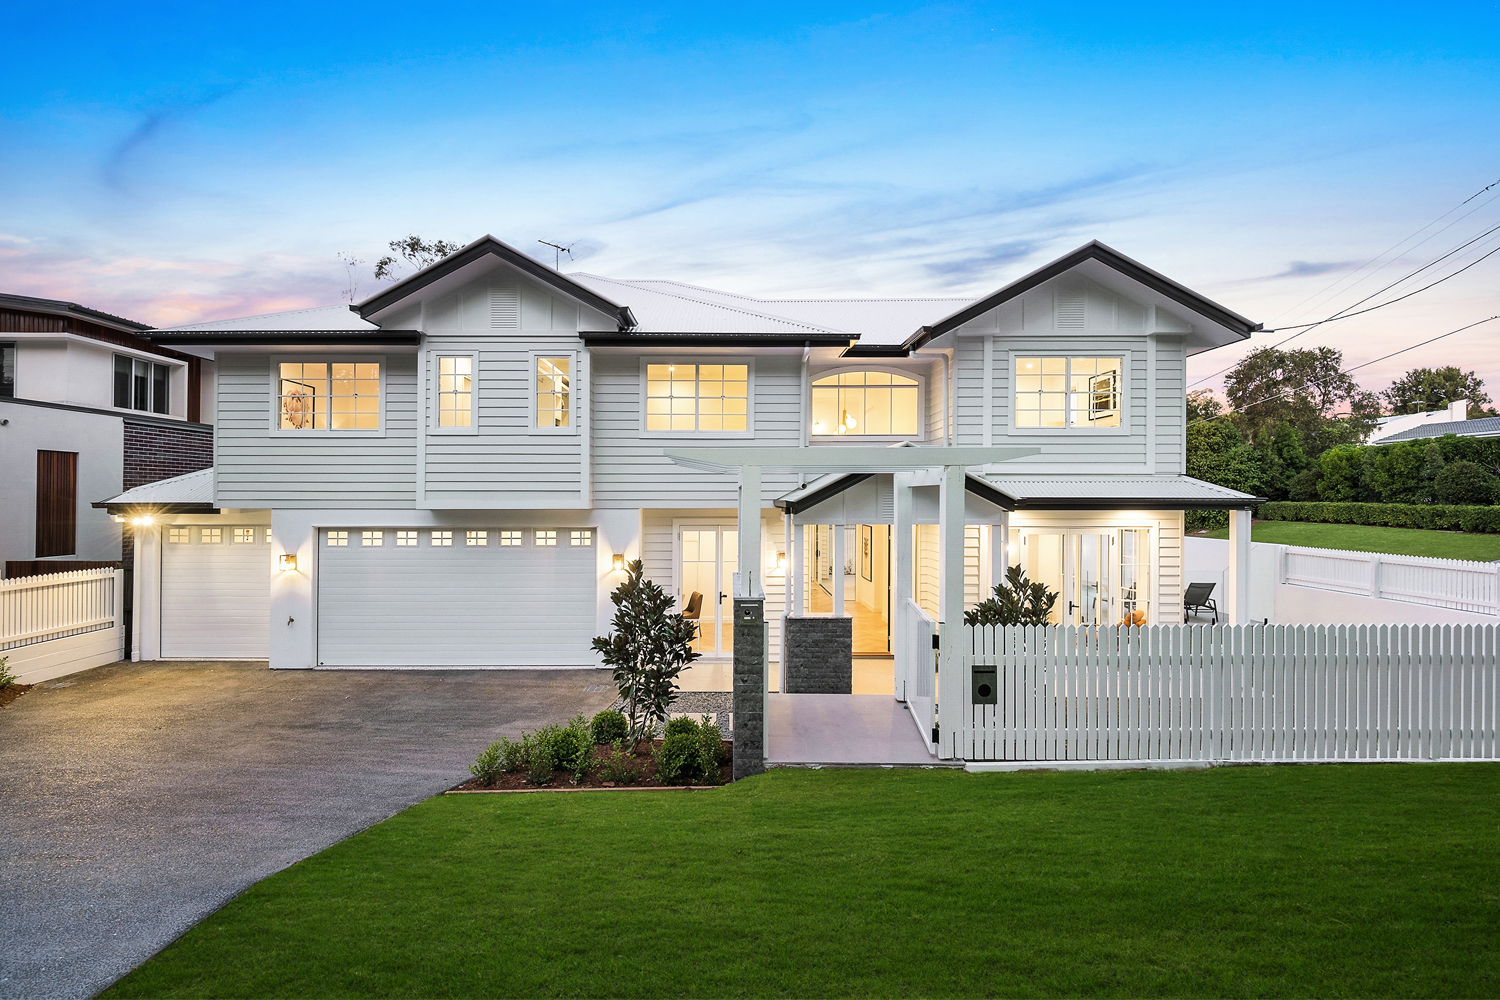 O'Shea & Sons Builders – Indooroopilly, QLD